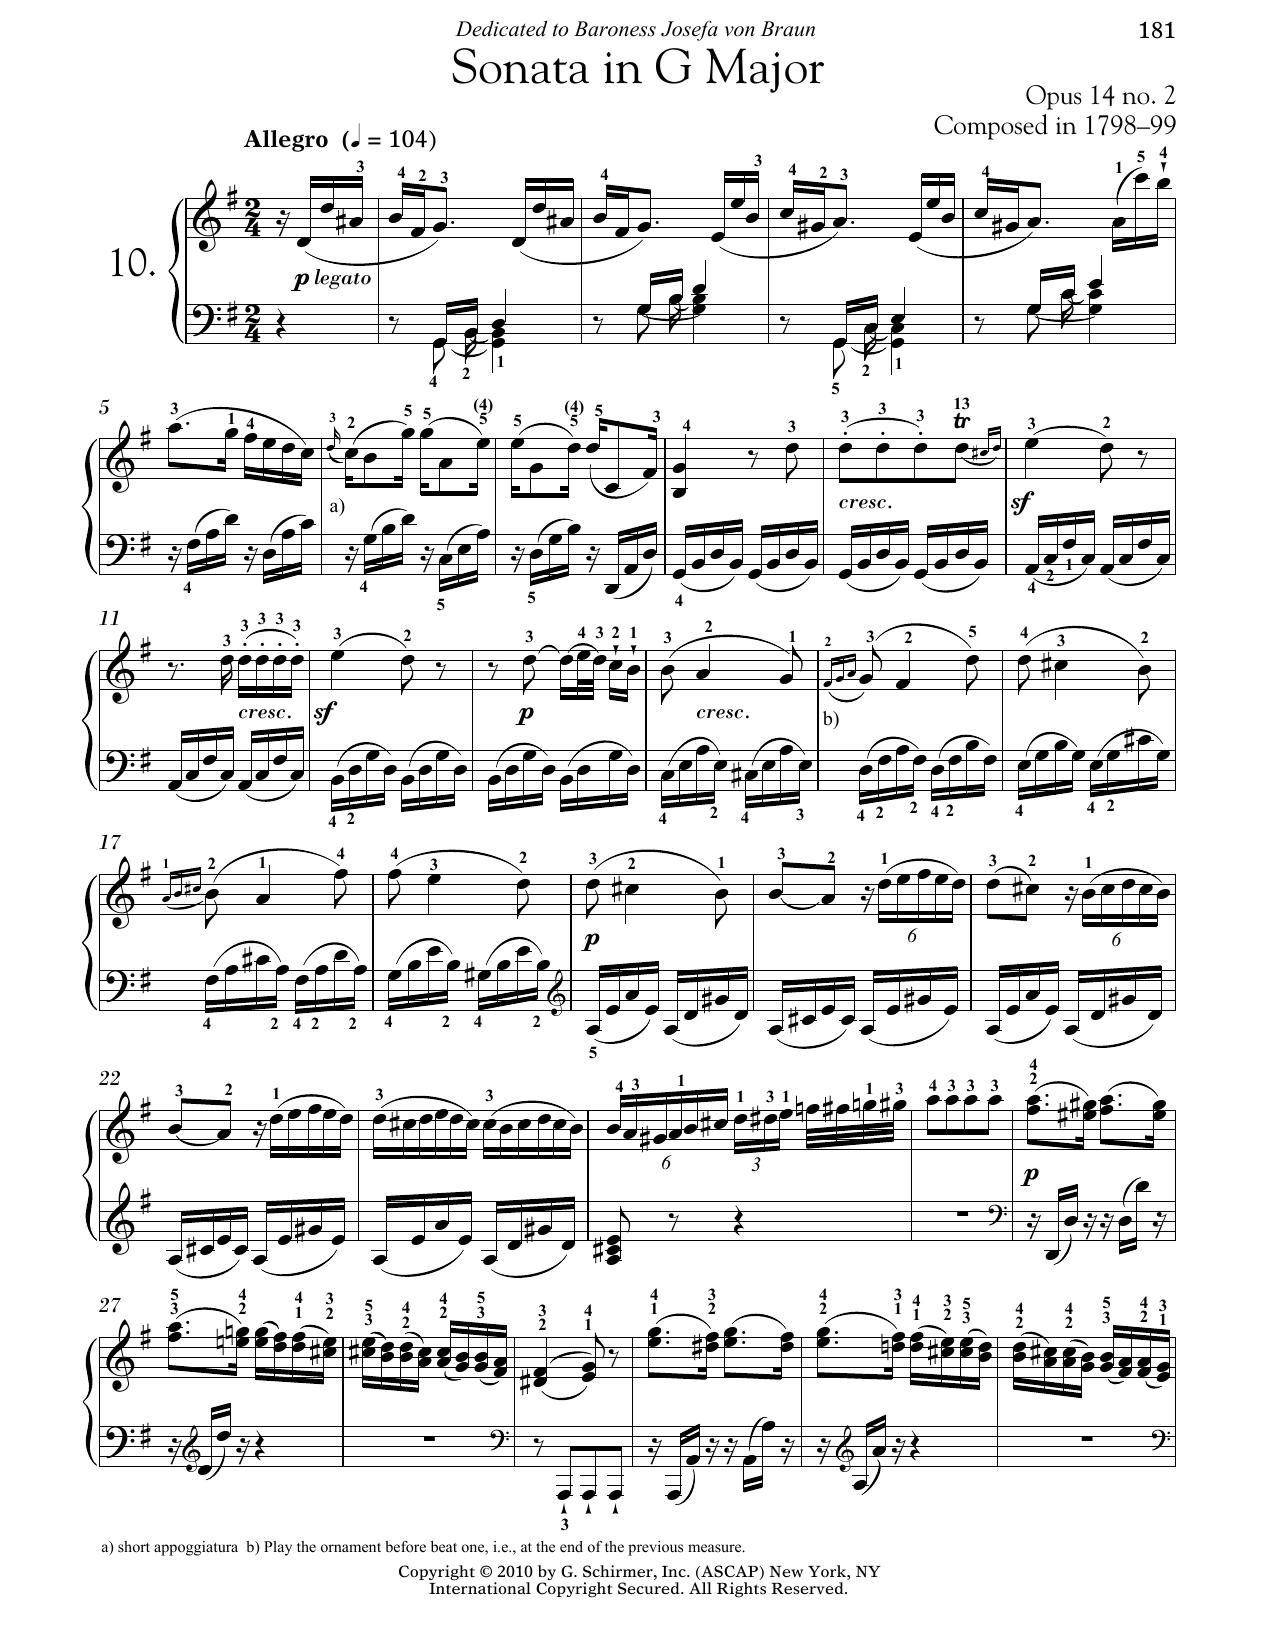 Ludwig van Beethoven Piano Sonata No. 10 In G Major, Op. 14, No. 2 sheet music notes and chords. Download Printable PDF.